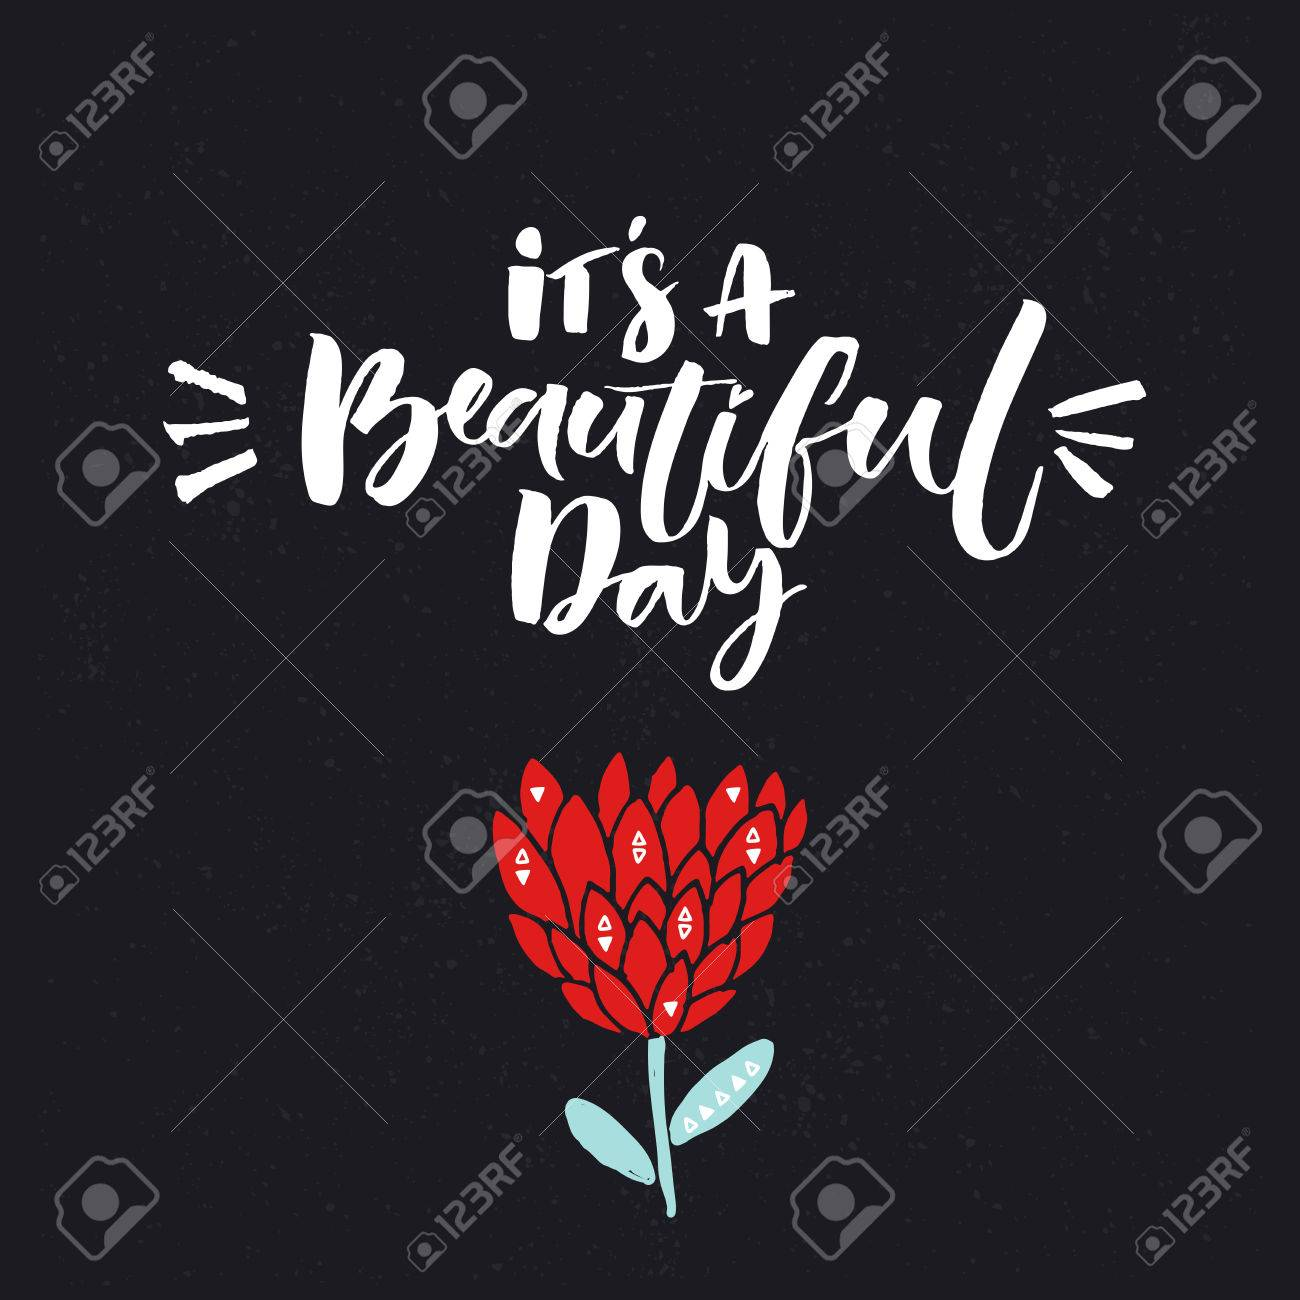 It s a beautiful day Inspiration quote and hand drawn red flower